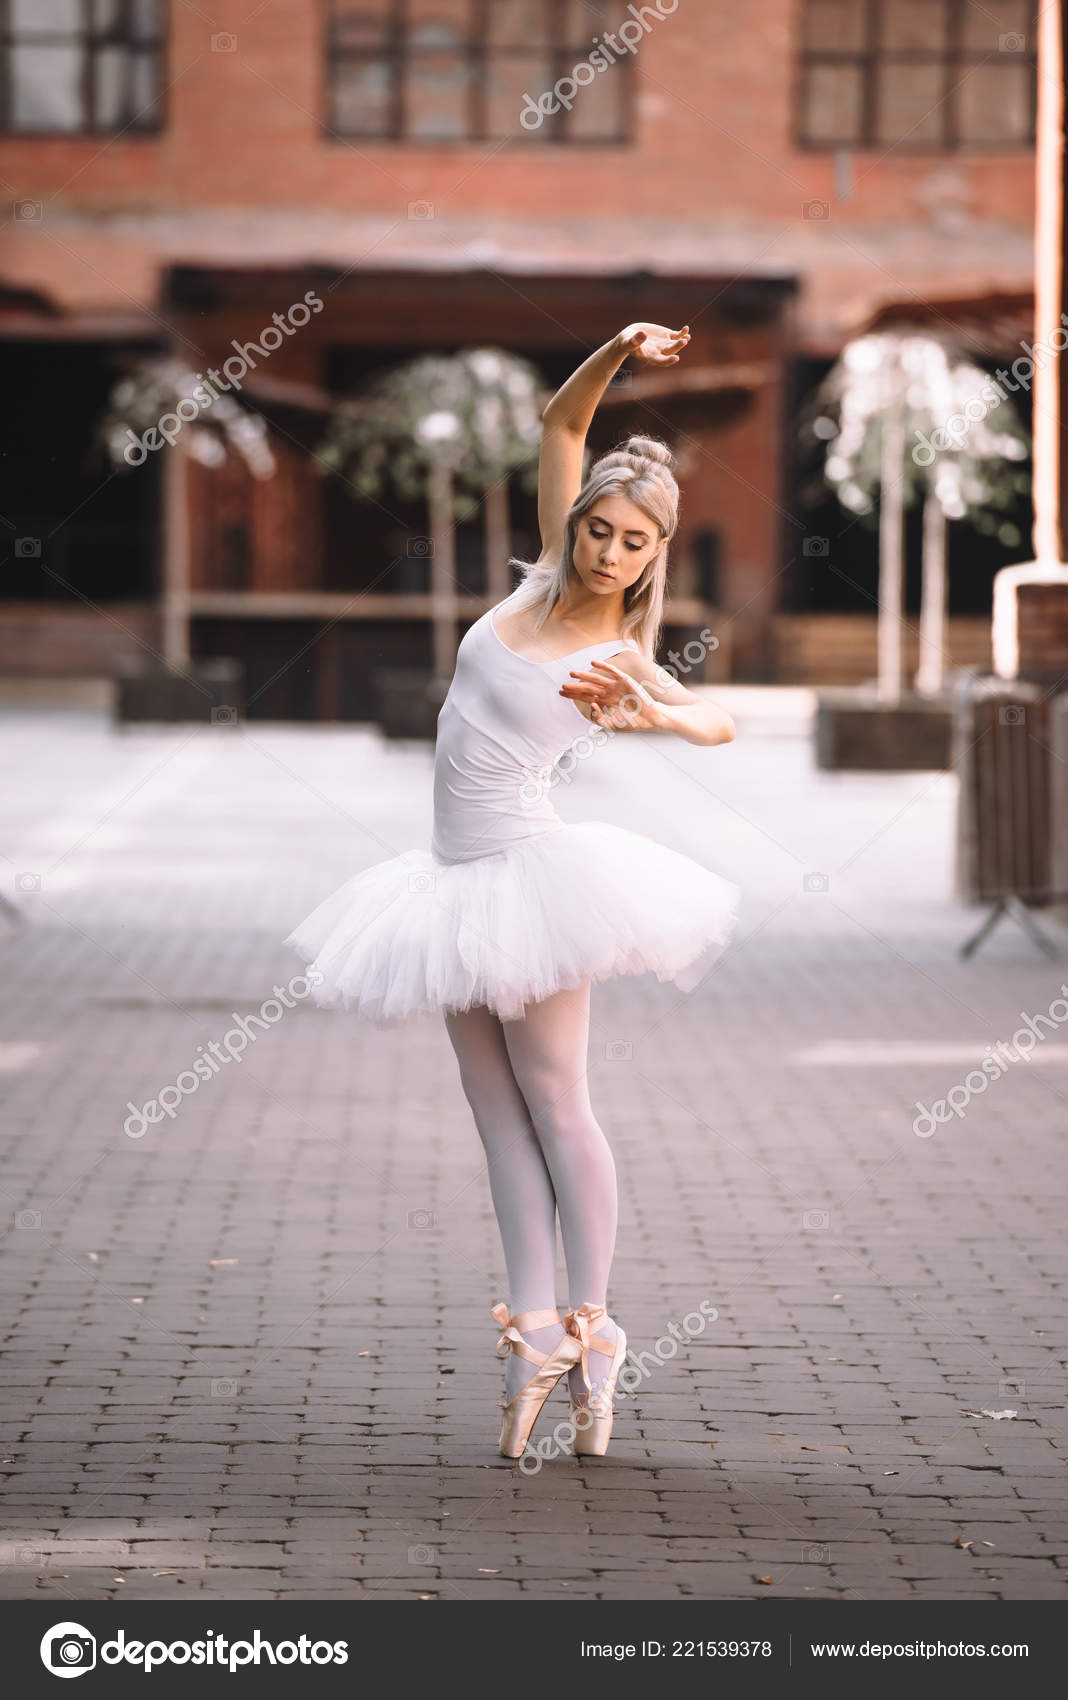 Beautiful Young Ballerina Pointe Shoes Dancing City Street Free Stock Photo C Allaserebrina 221539378